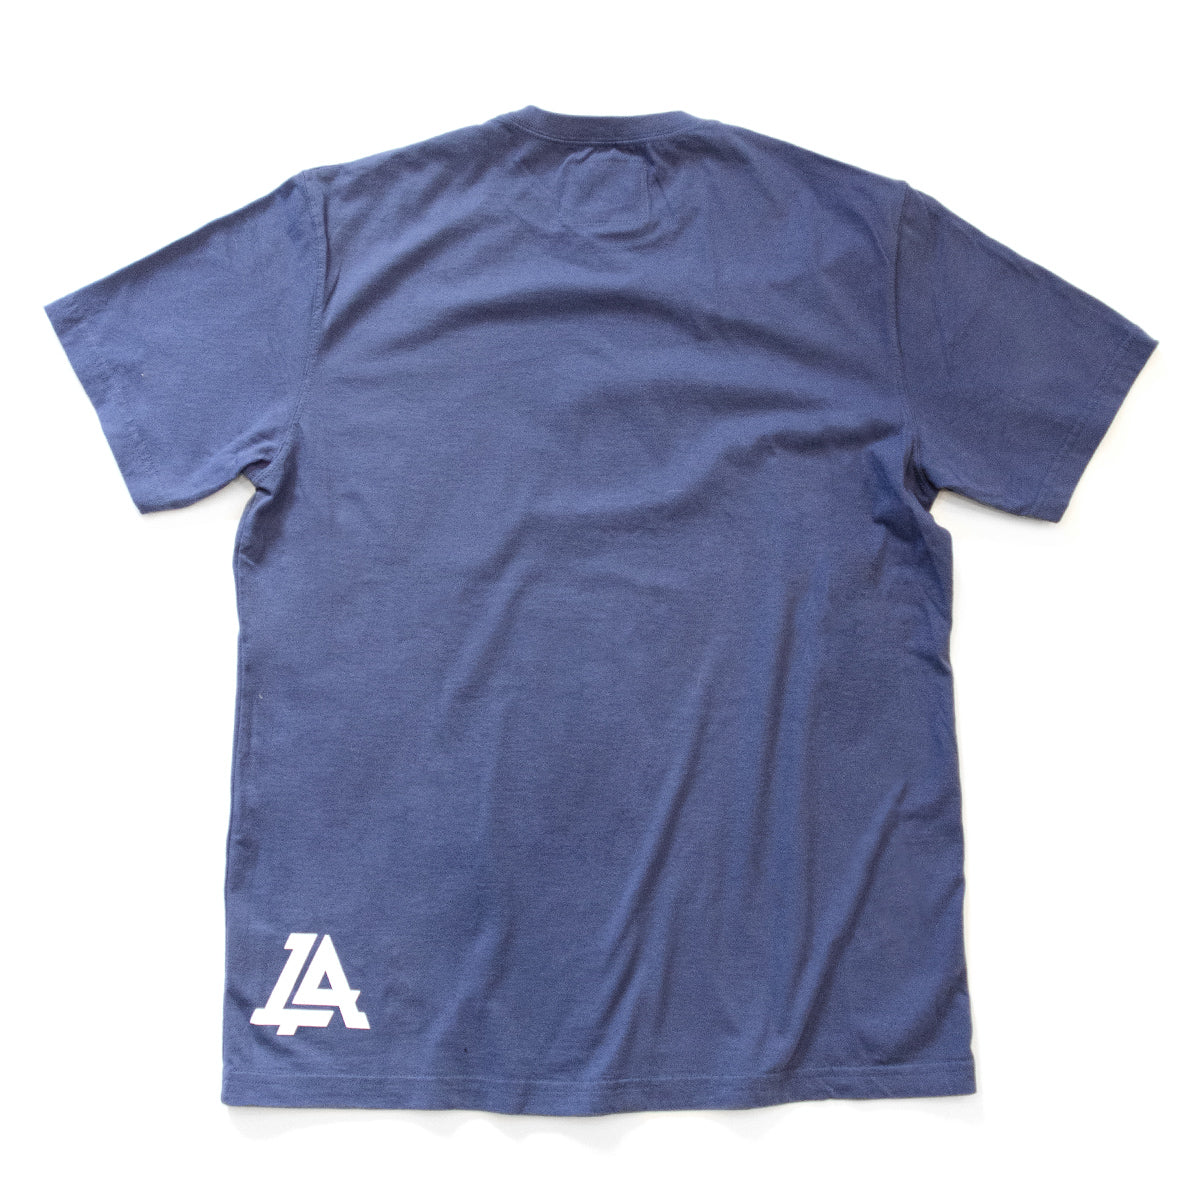 Lost Art Canada - white on royal blue lost art icon logo tee back view